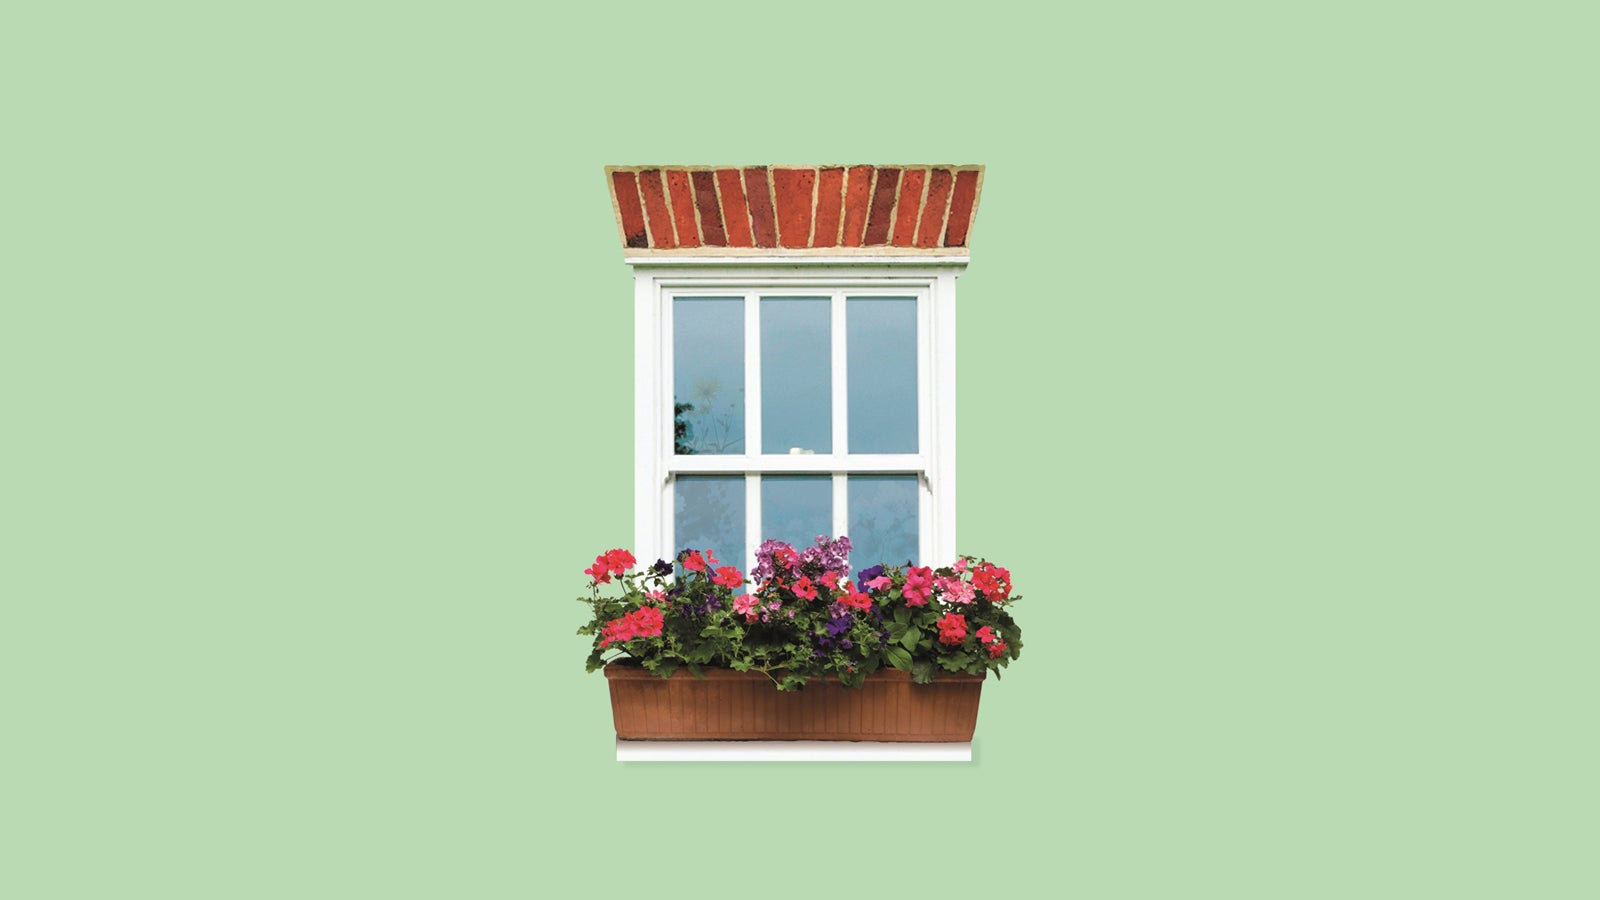 A green background with a window and a windowbox full of flowers. Illustration taken from the jacket of An Unsuitable Match by Joanna Trollope.